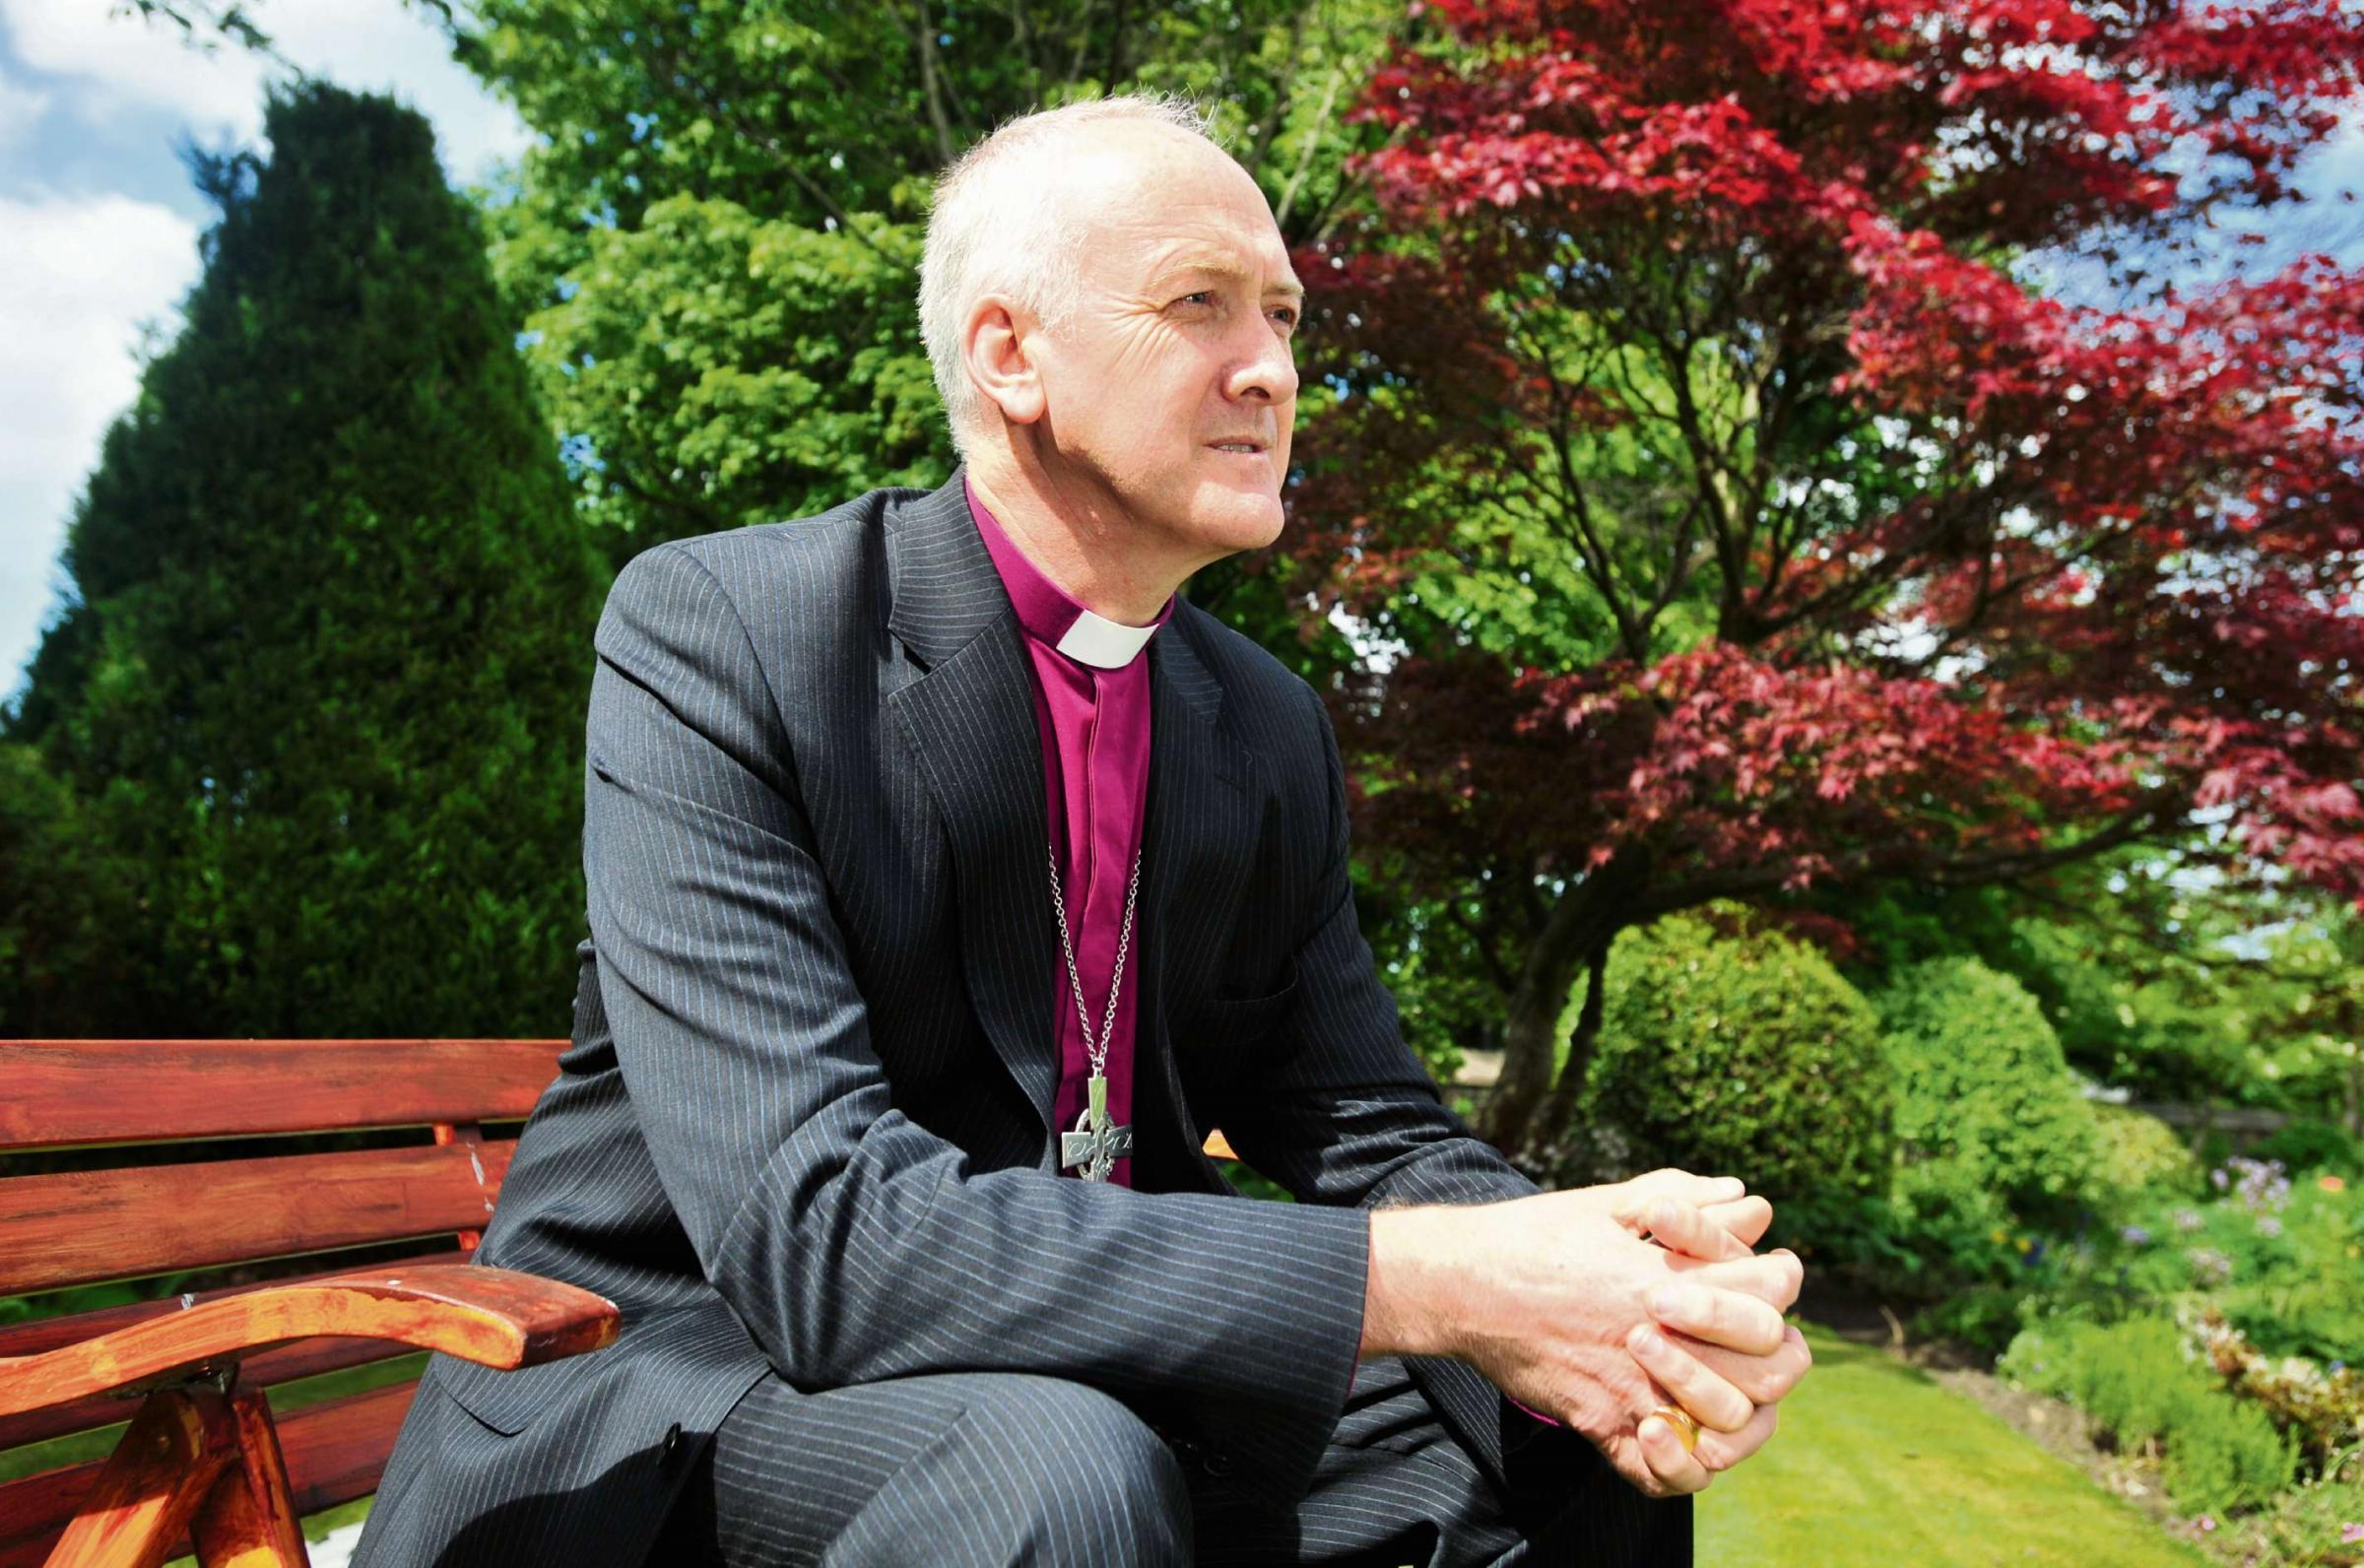 'EXCITING': Nick Baines will sit in the Lords after being enthroned as Bishop for West Yorkshire and the Dales